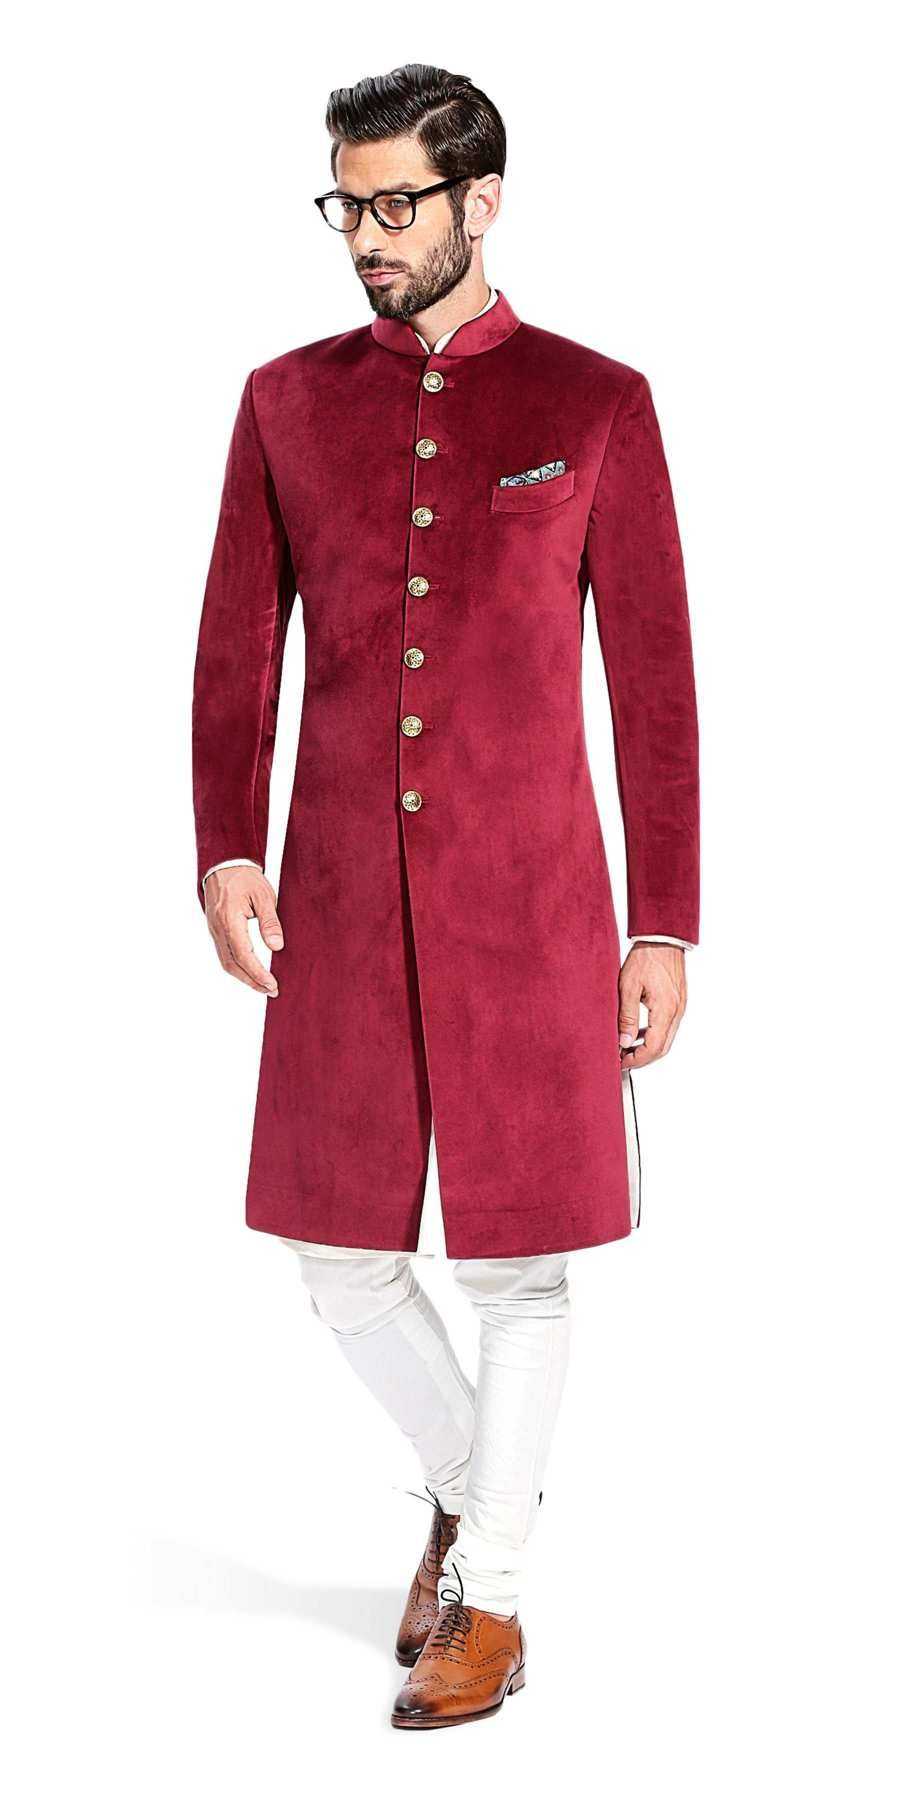 Sujaan maroon velvet men fashion pinterest sherwani indian